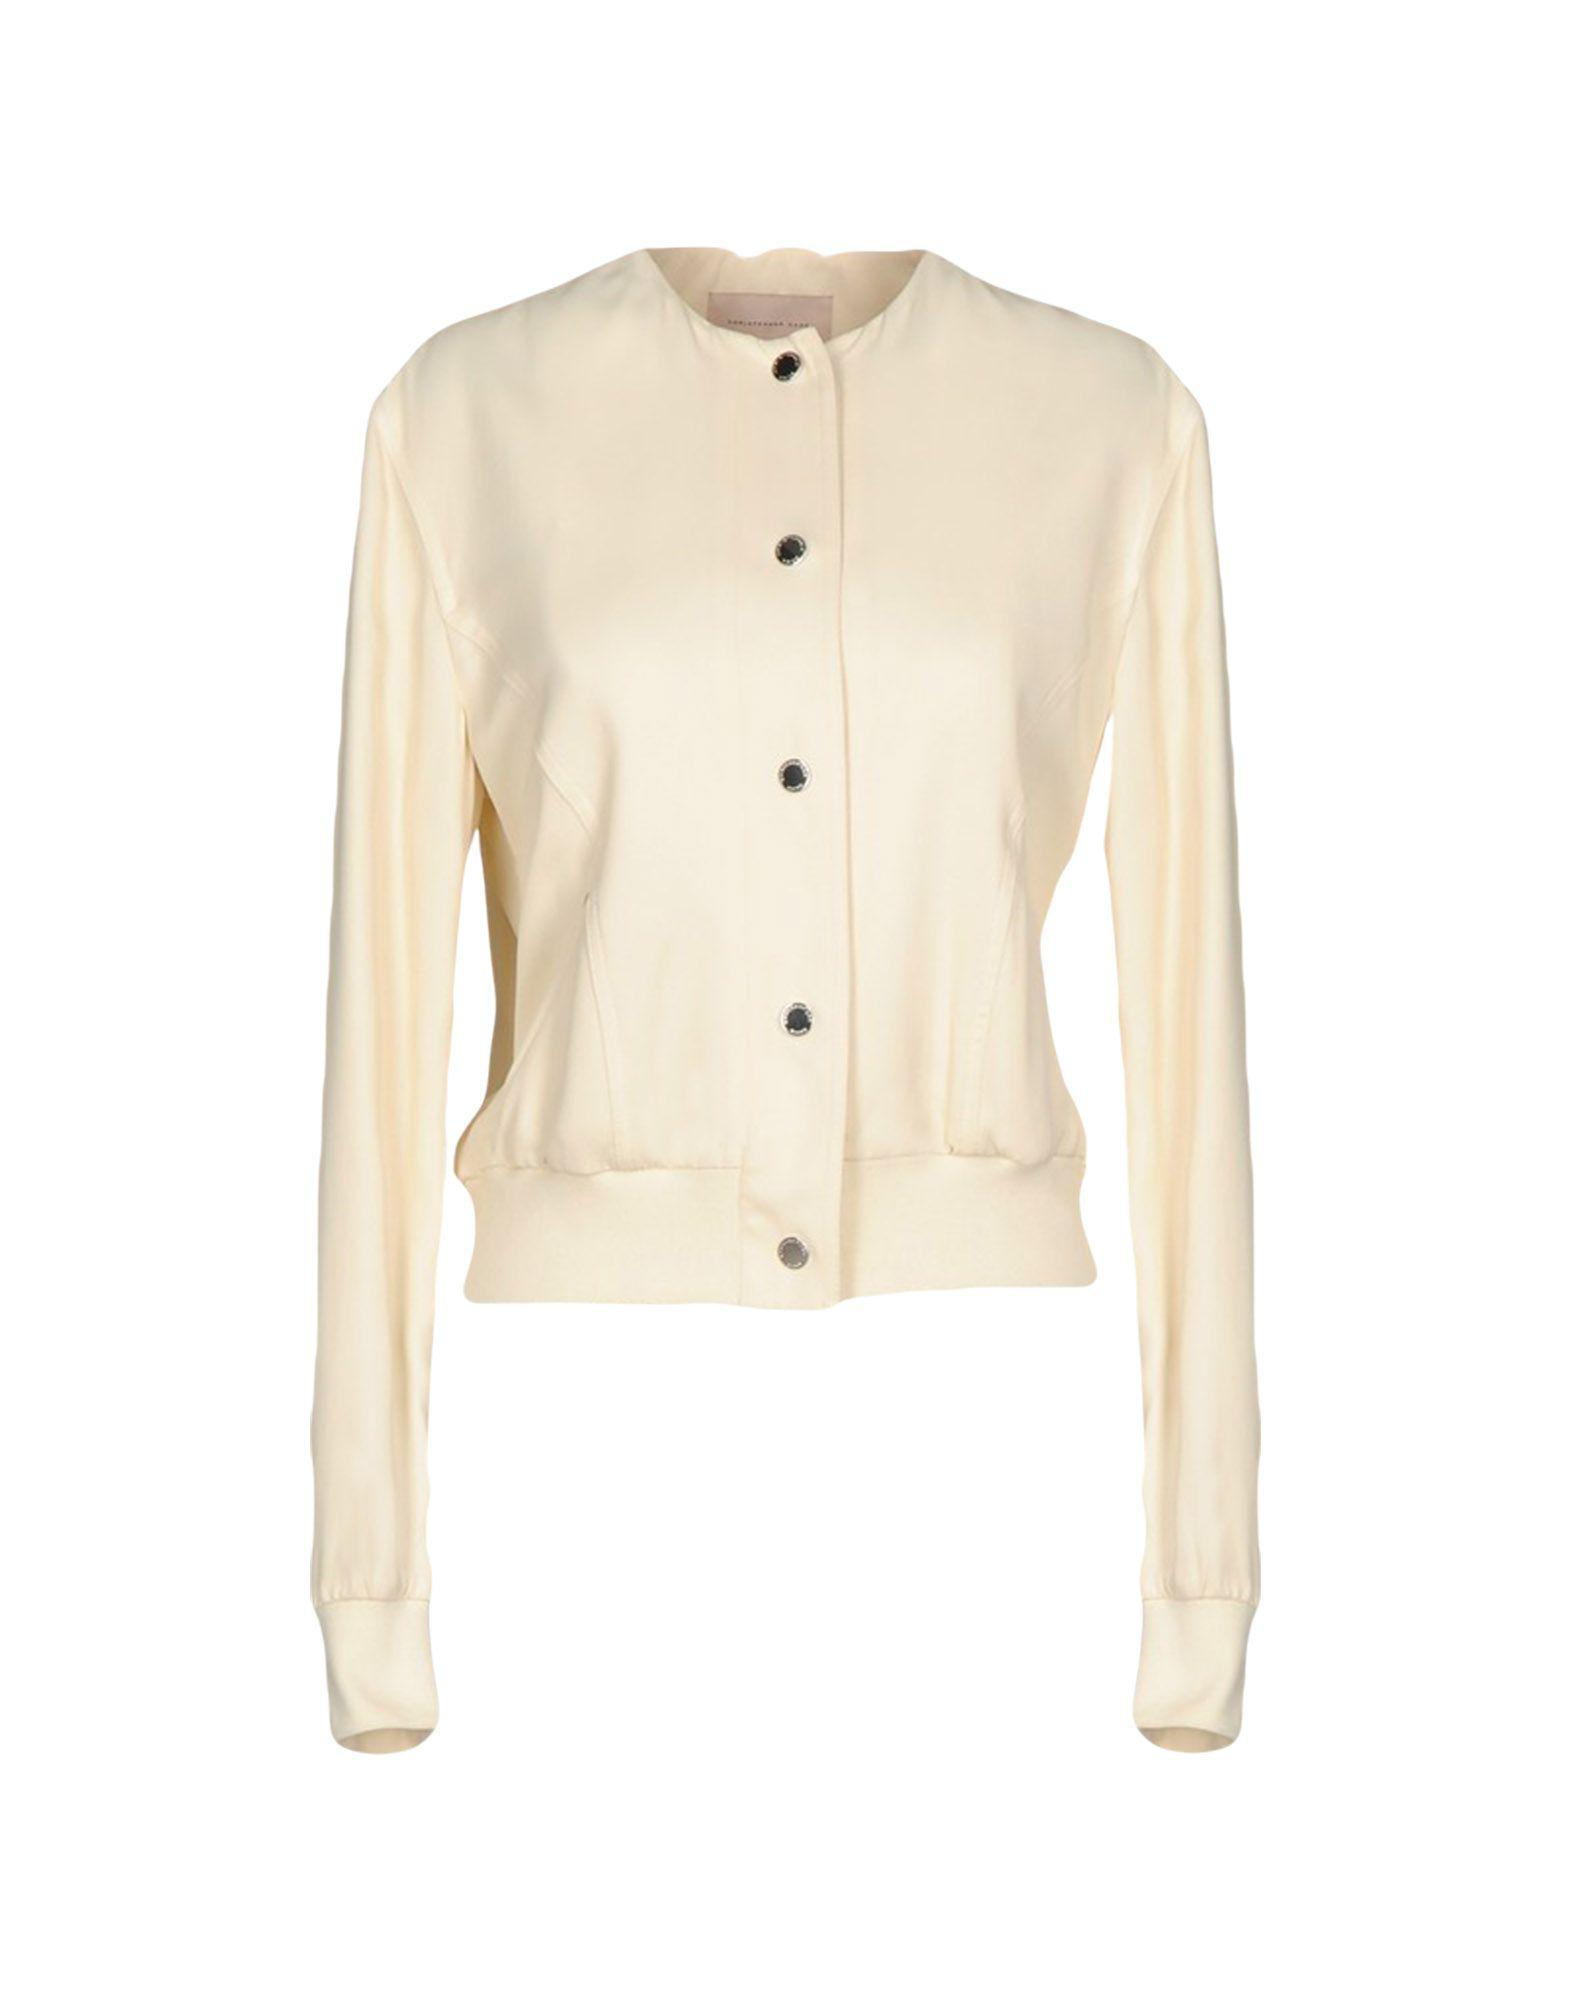 69f68459304 Lyst - Christopher Kane Jacket in Natural